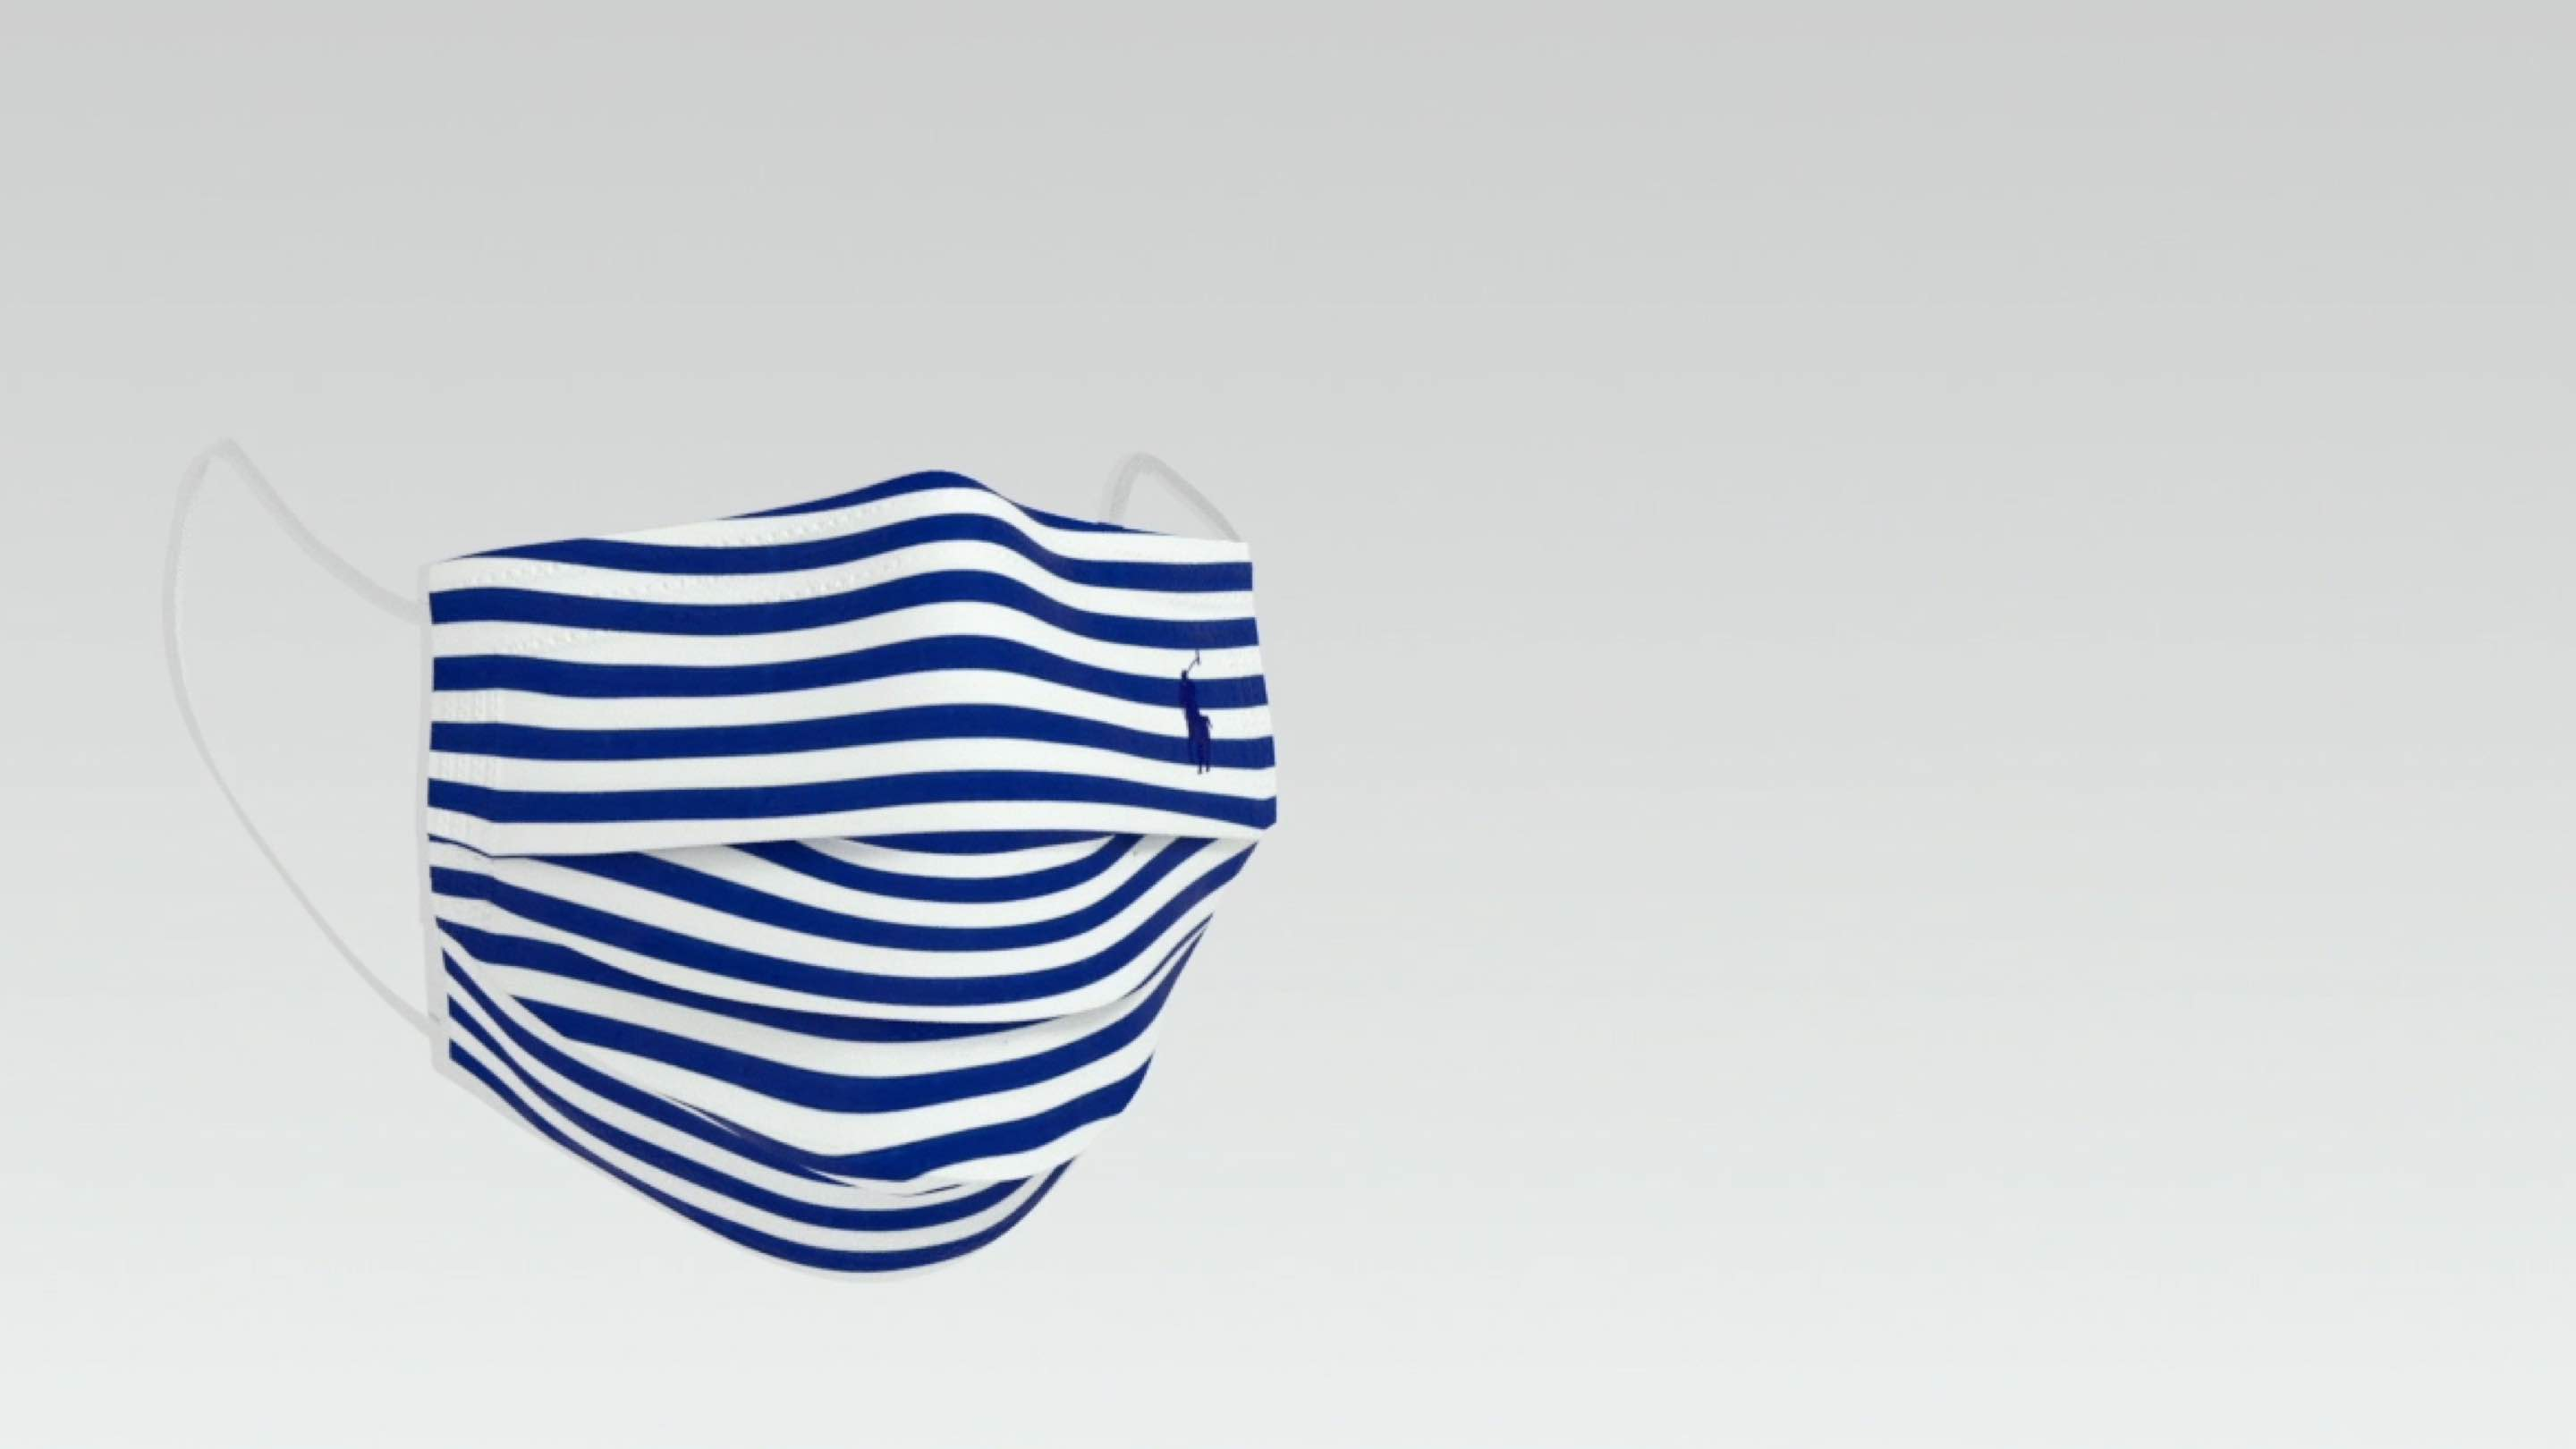 Blue-and-white striped Polo cloth face mask.